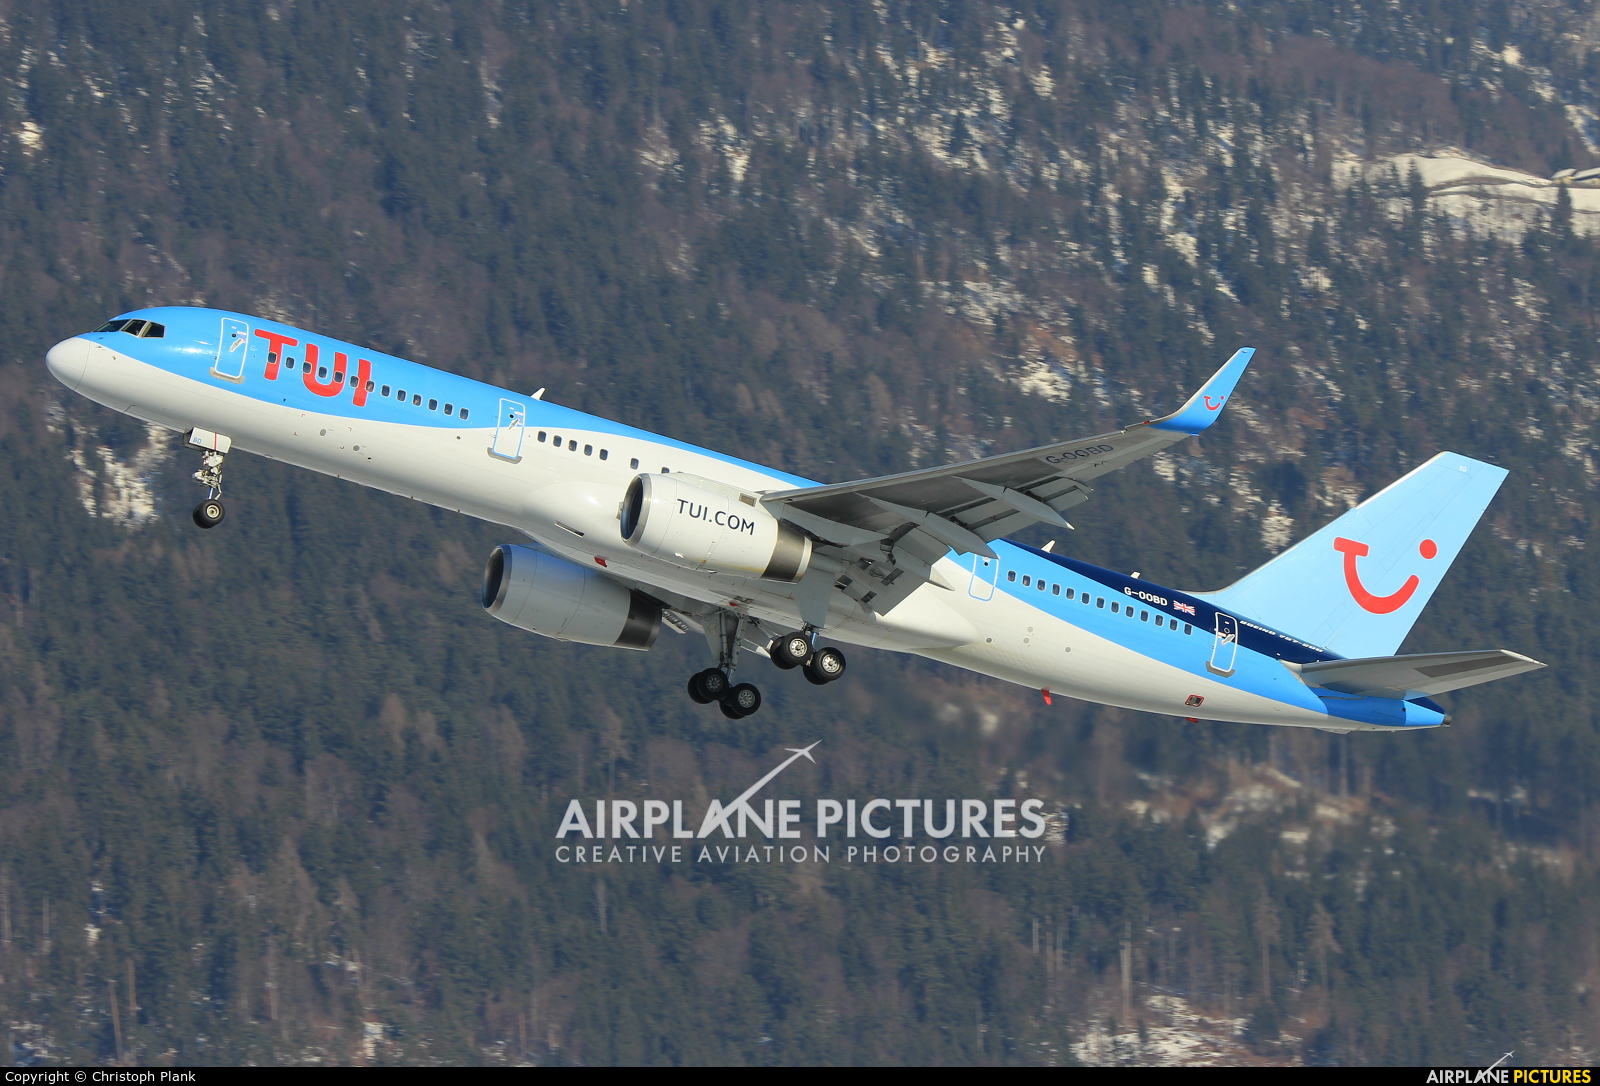 TUI Airways G-OOBD aircraft at Innsbruck